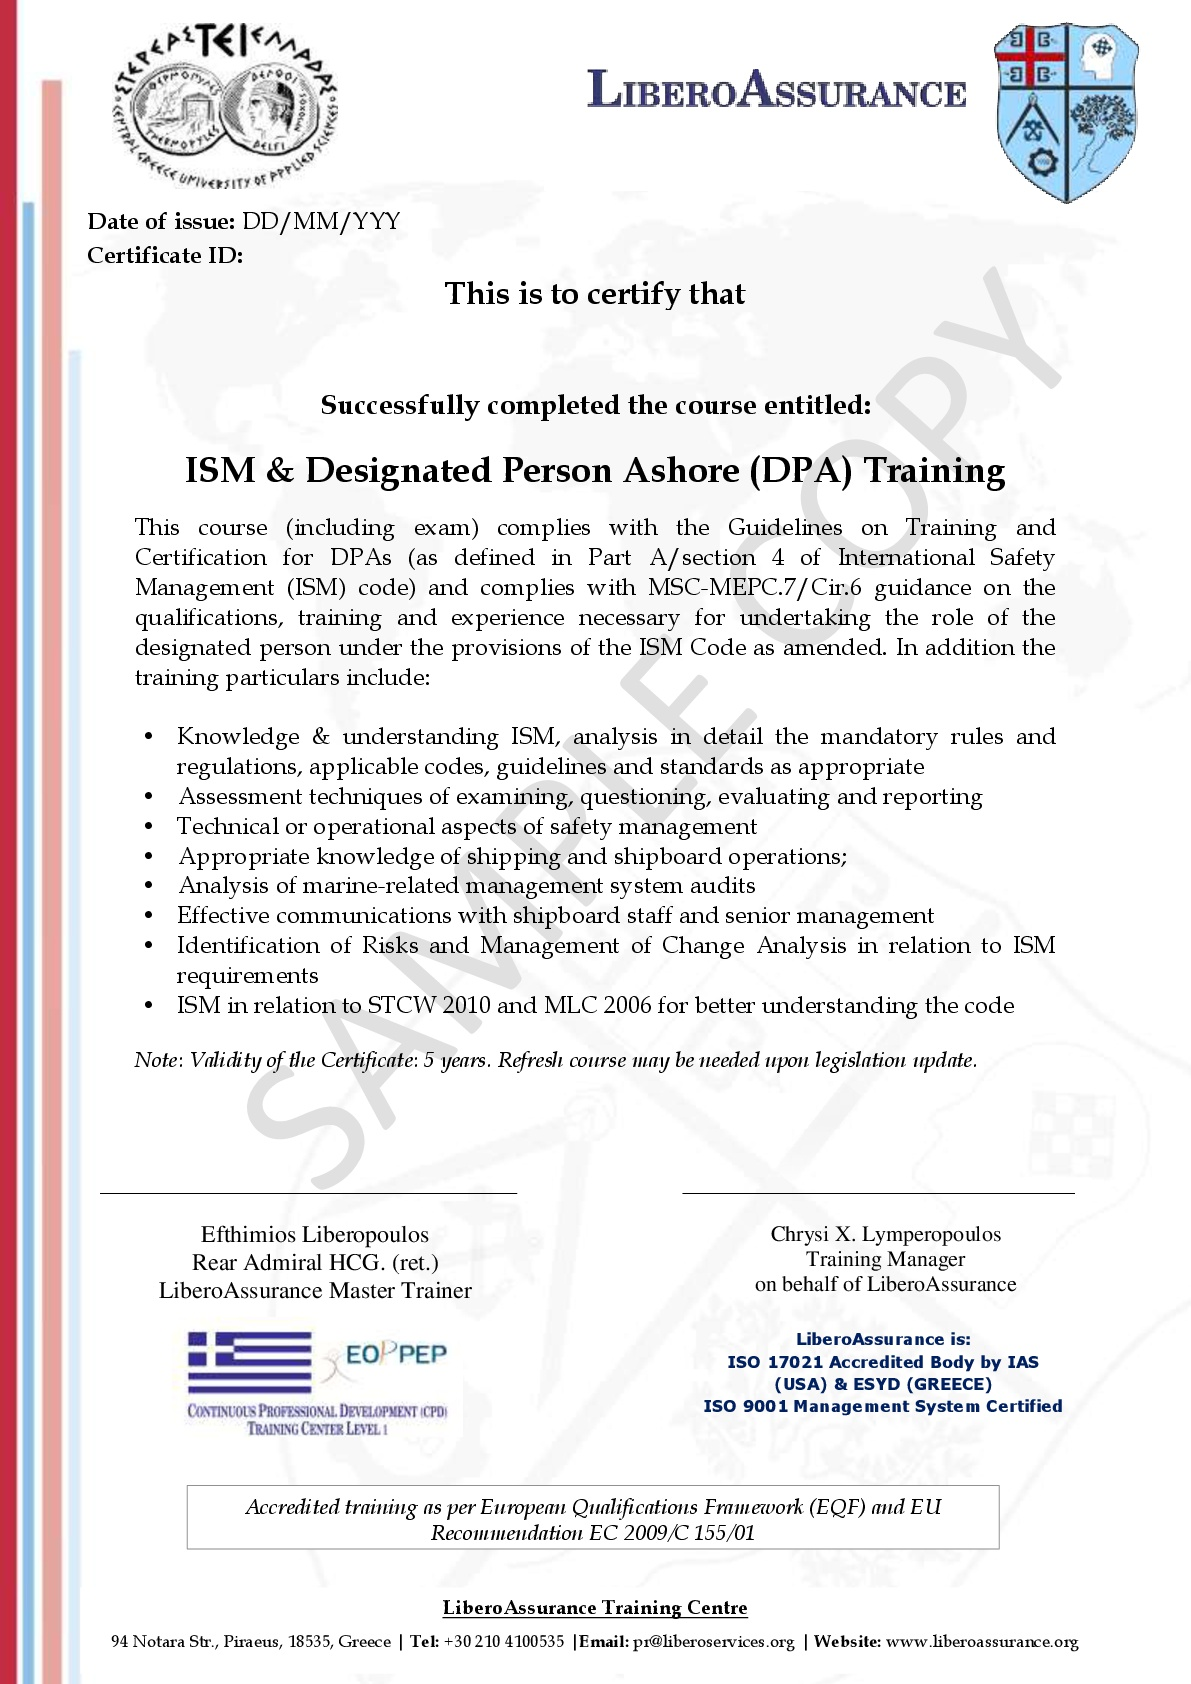 International Safety Management Ism Code And Designated Person